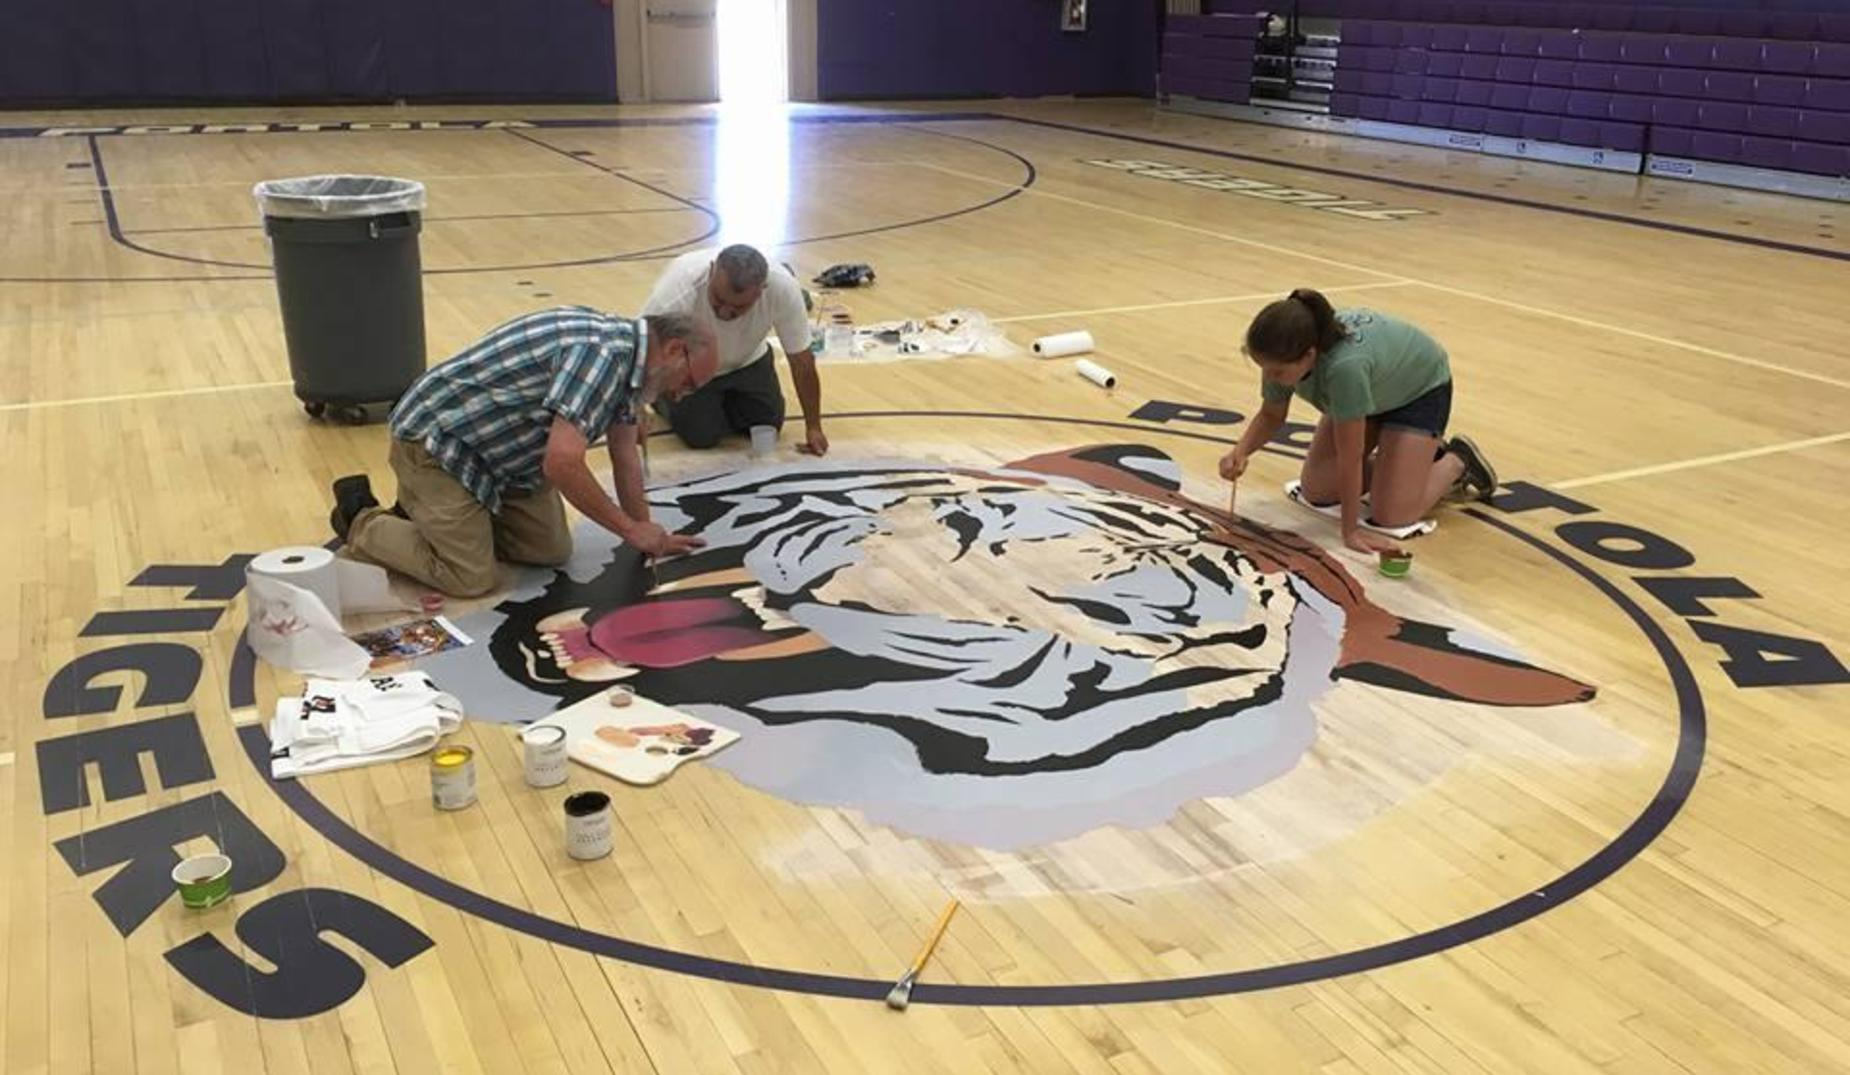 Painting the gym floor